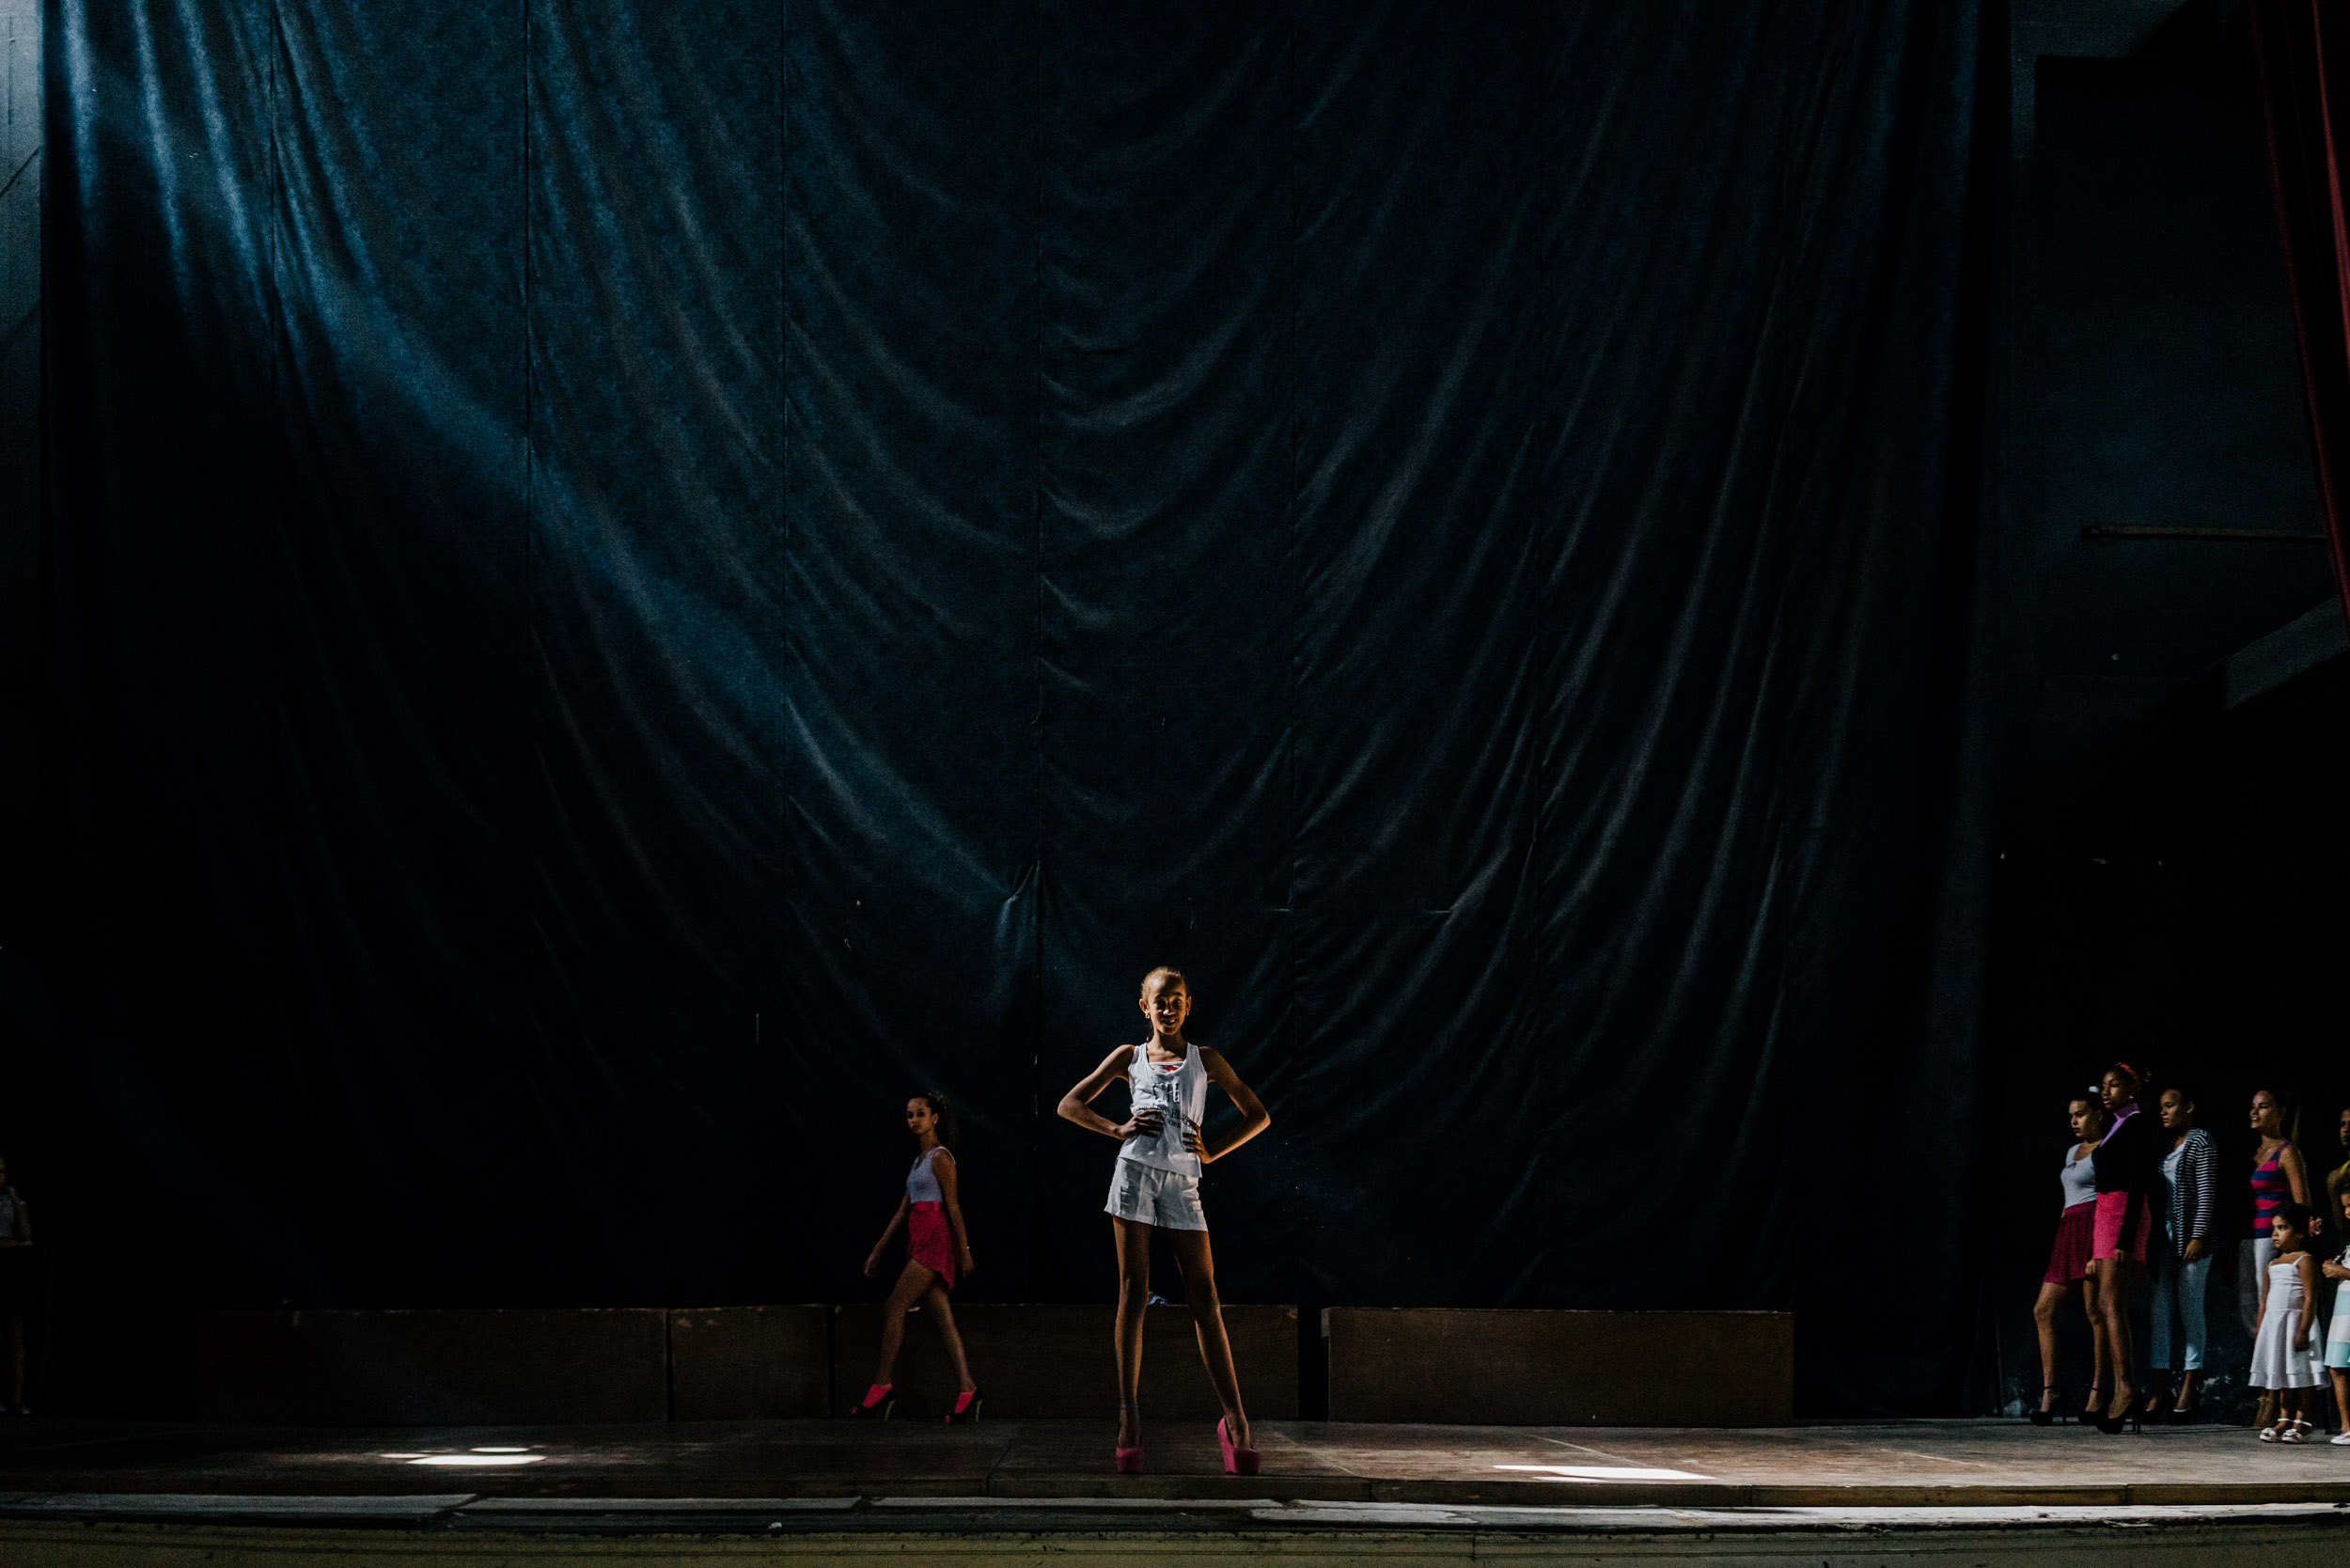 Modeling school attendees strut and pose on stage at the Teatro Municipal in Havana